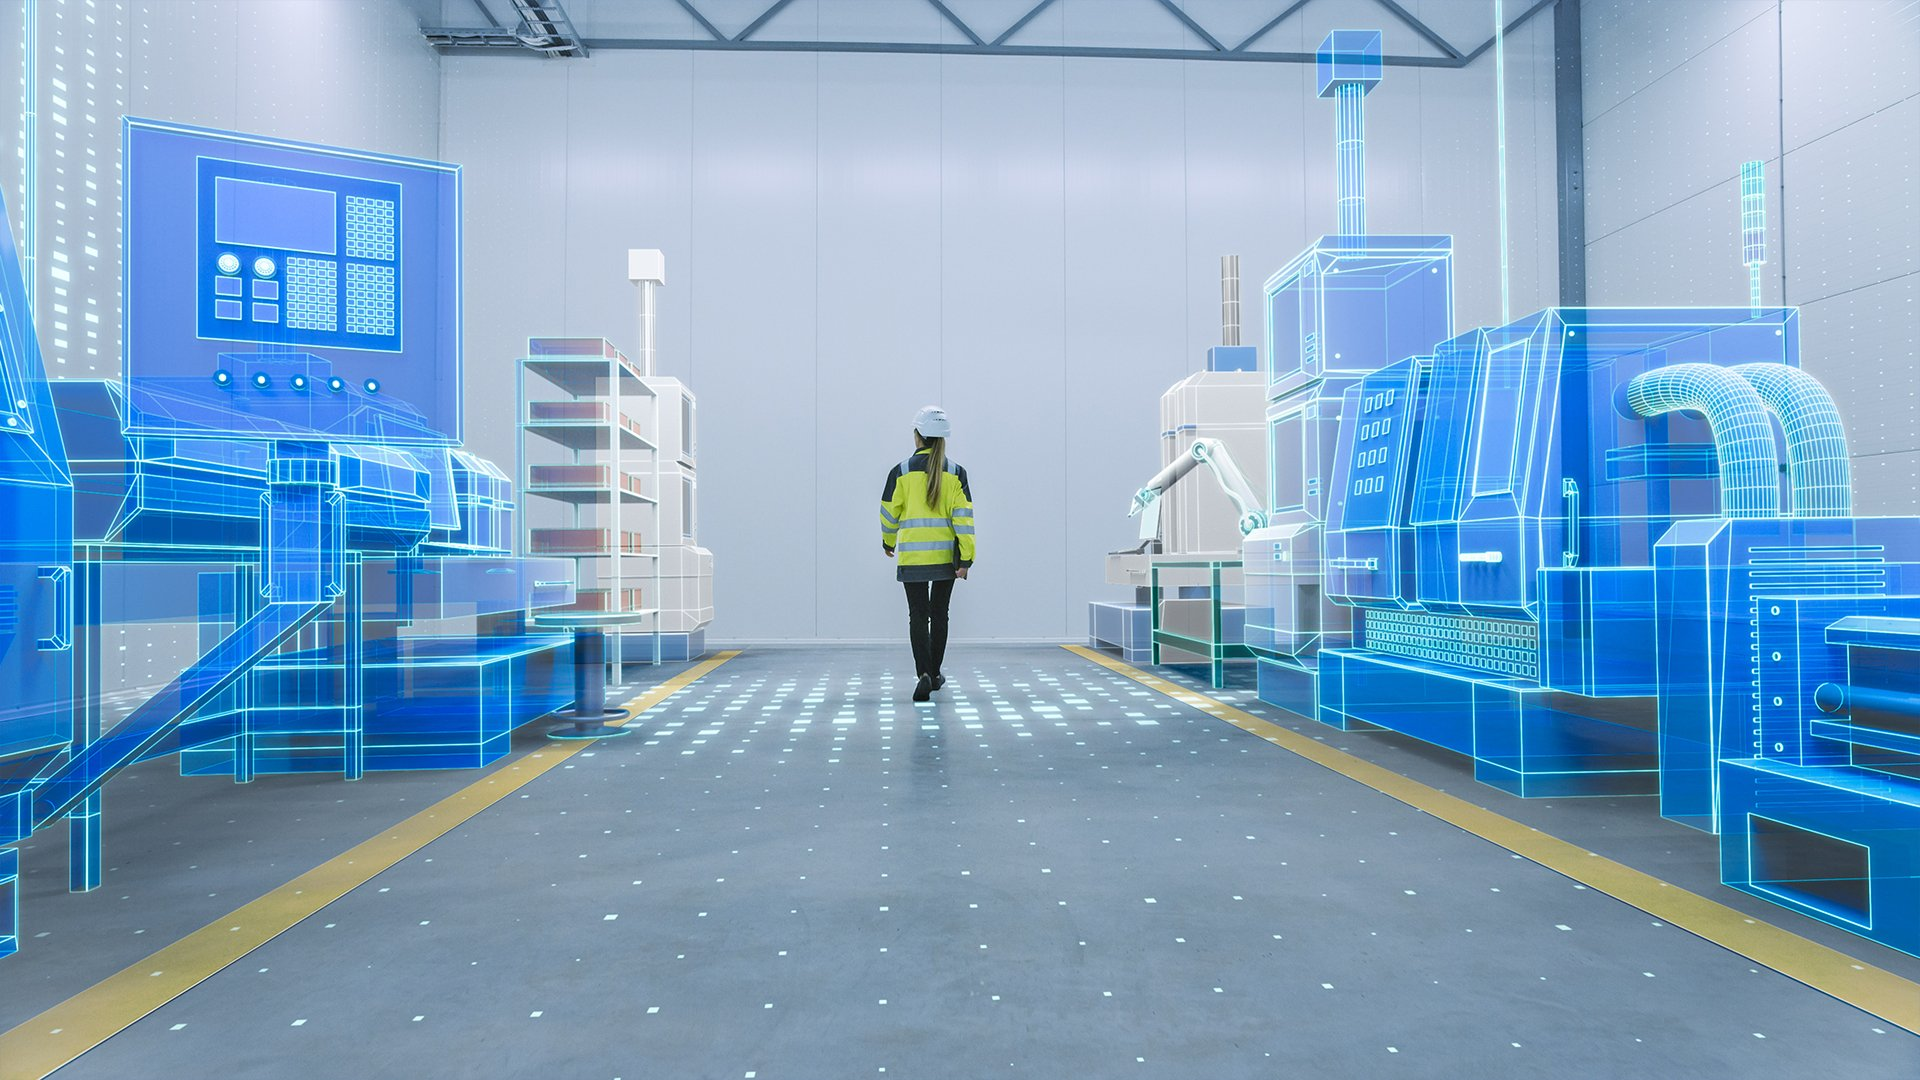 Female employee wearing white hard hat and a yellow safety jacket walking in an aisle of a digitizal plant